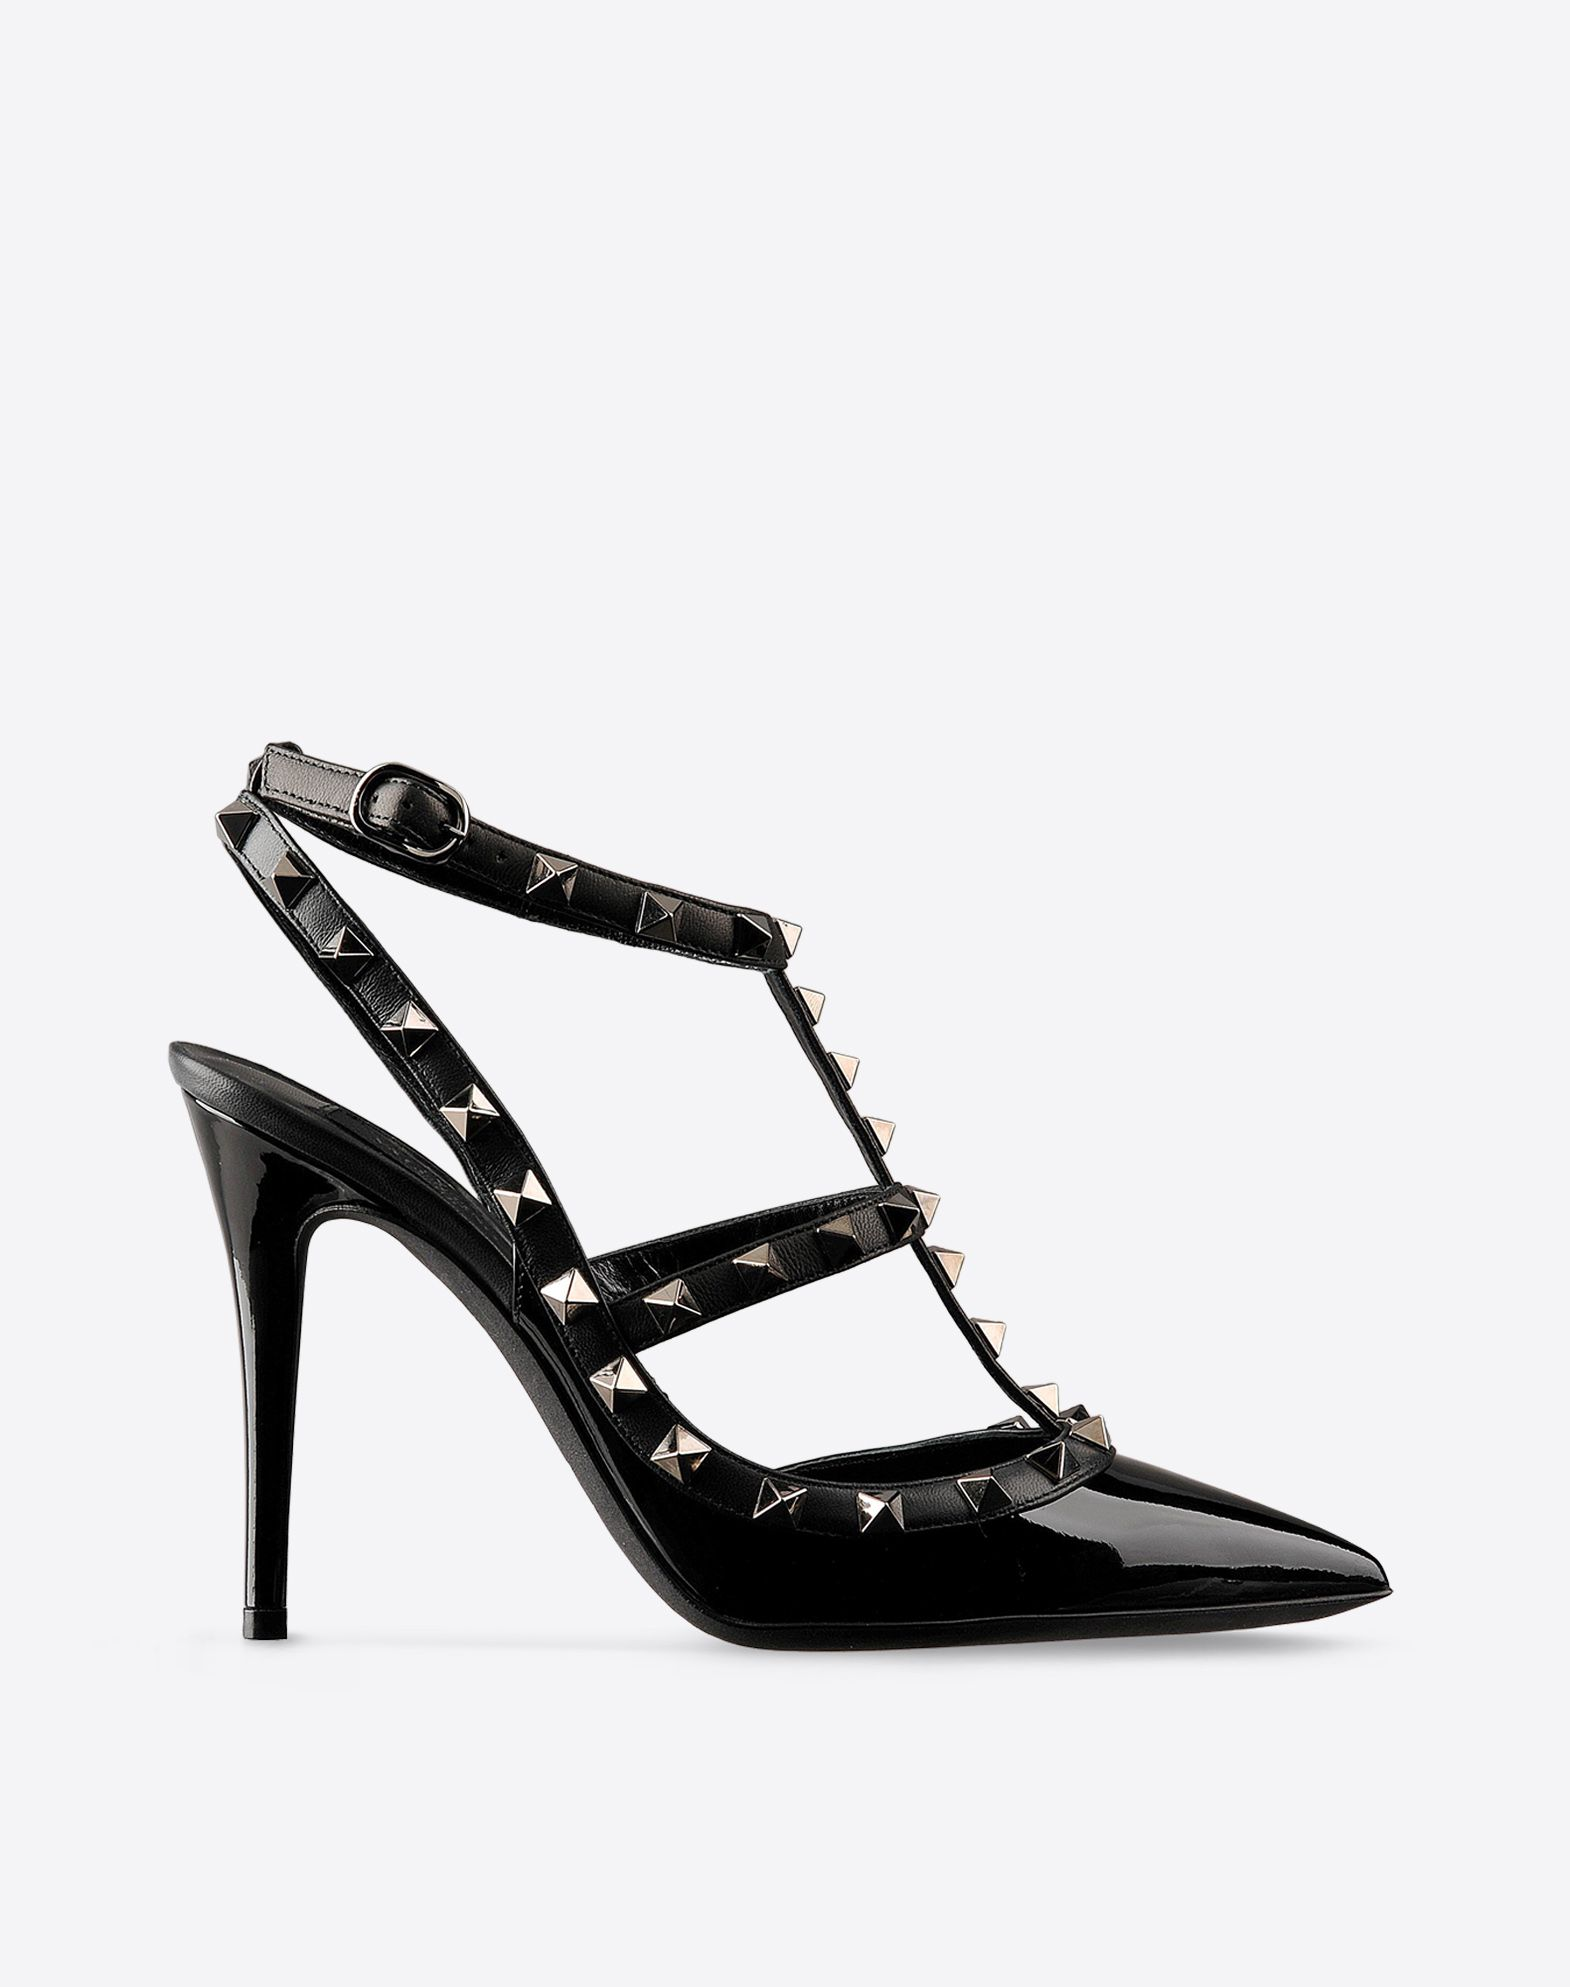 VALENTINO Varnished effect Solid color Side buckle closure Leather sole  Metallic inserts Narrow toeline Covered heel